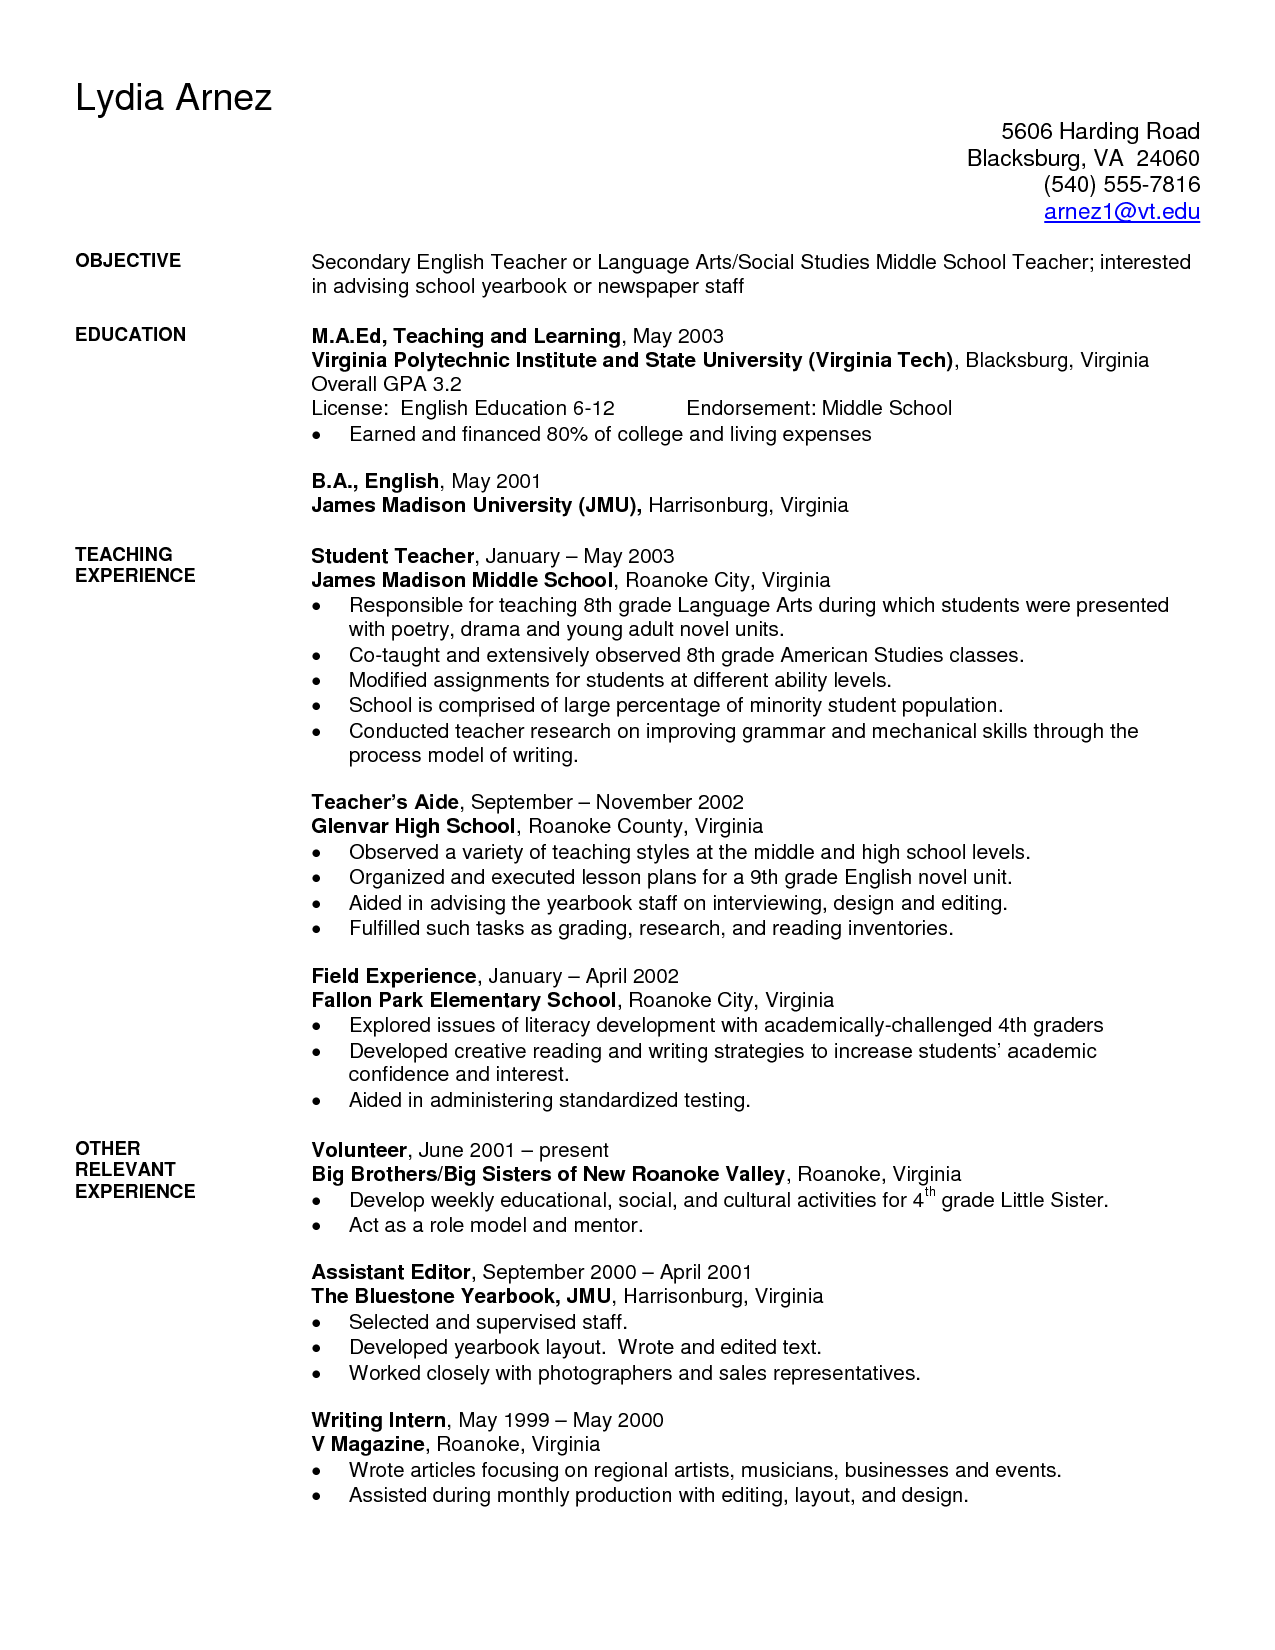 Resume Education Example Stunning Art Teacher Resume Examples  Sample Secondary Teacher Resume Inspiration Design